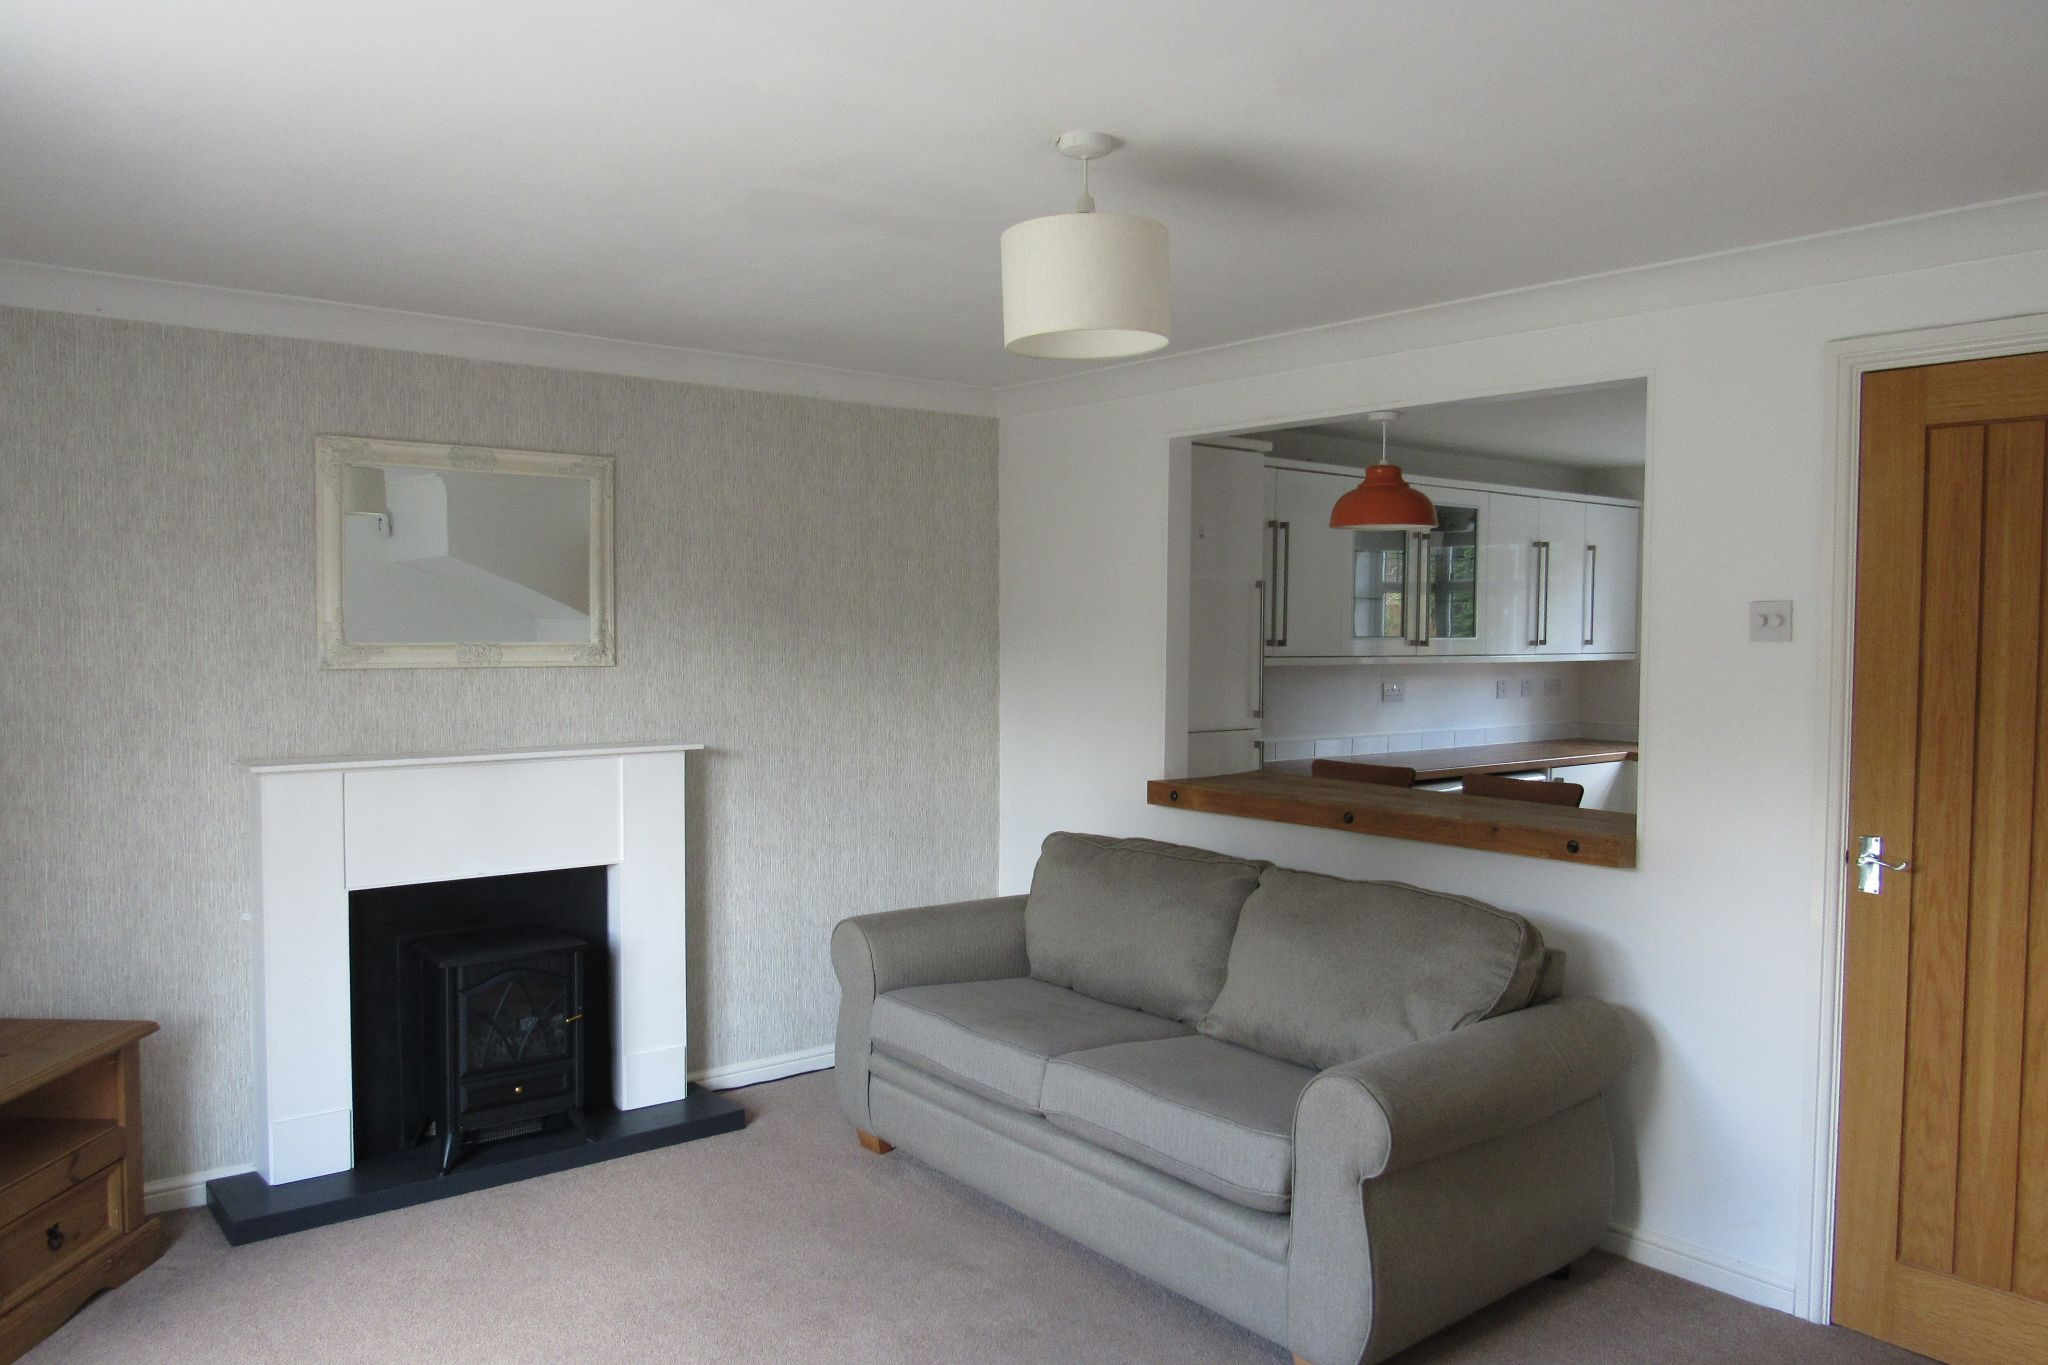 3 bedroom semi-detached house Sale Agreed in Manchester - Photograph 27.